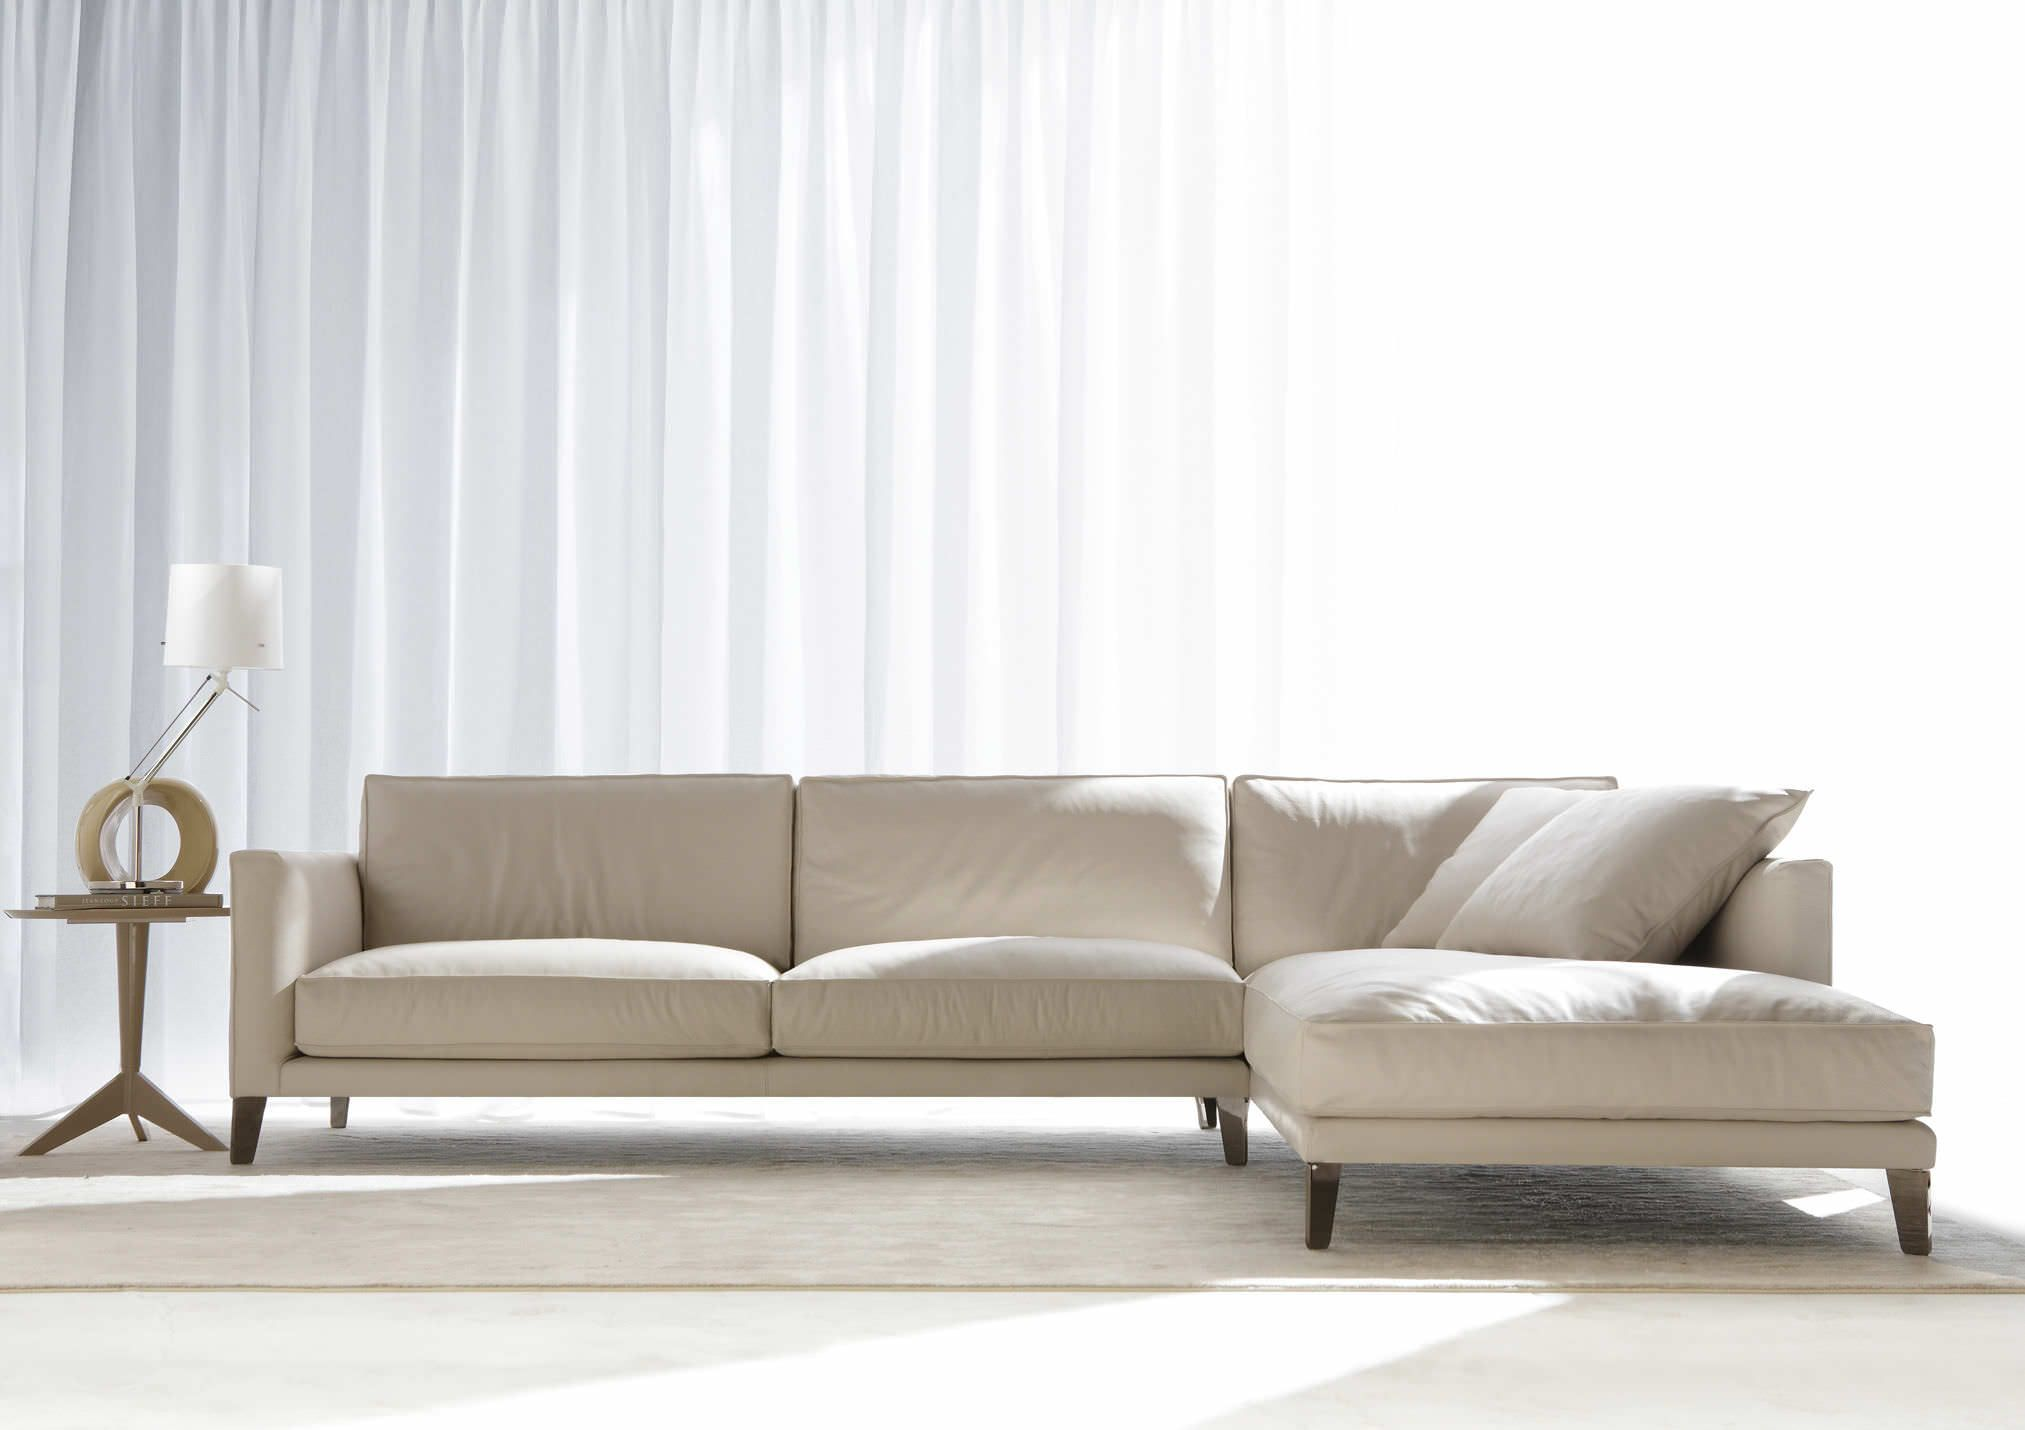 Cozy Living Room Design With L Shaped White Linen Fabric